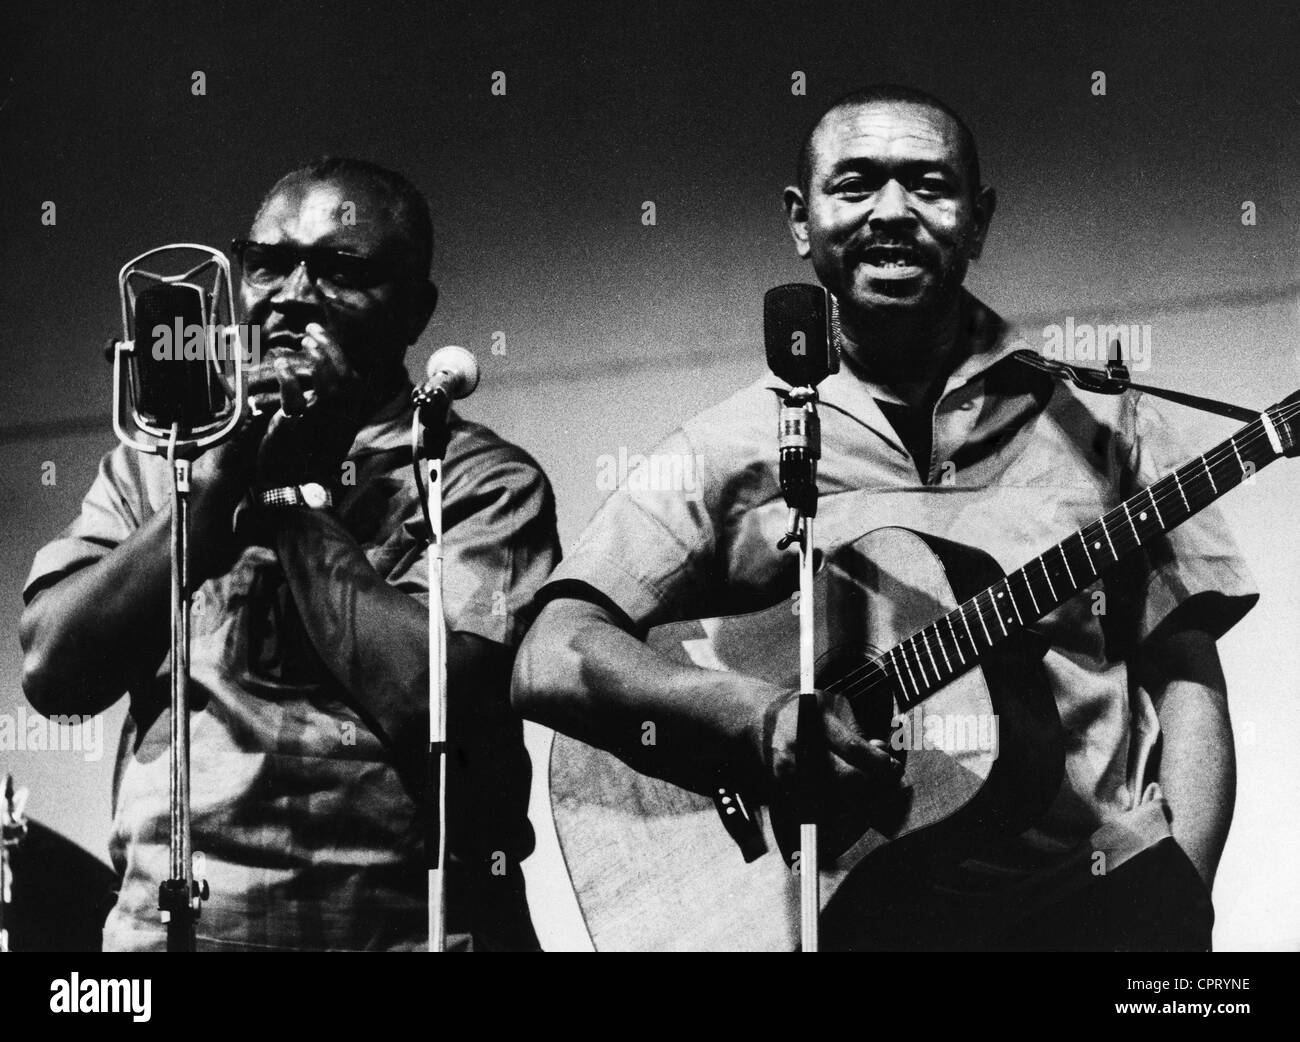 McGhee, Walter Brown 'Brownie', 30.11 1915 - 16.2.1996, American musician and singer, with Sonny Terry, - Stock Image